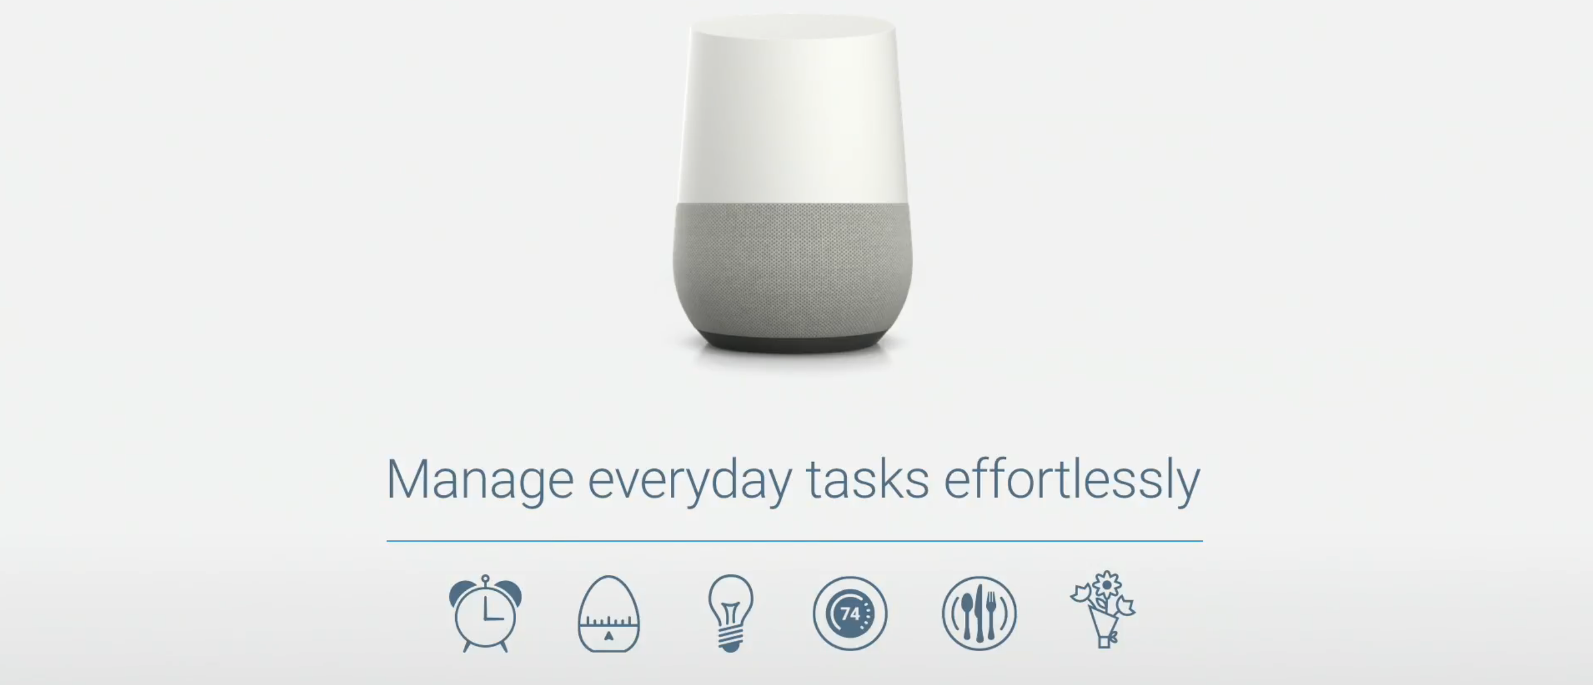 google-home-device